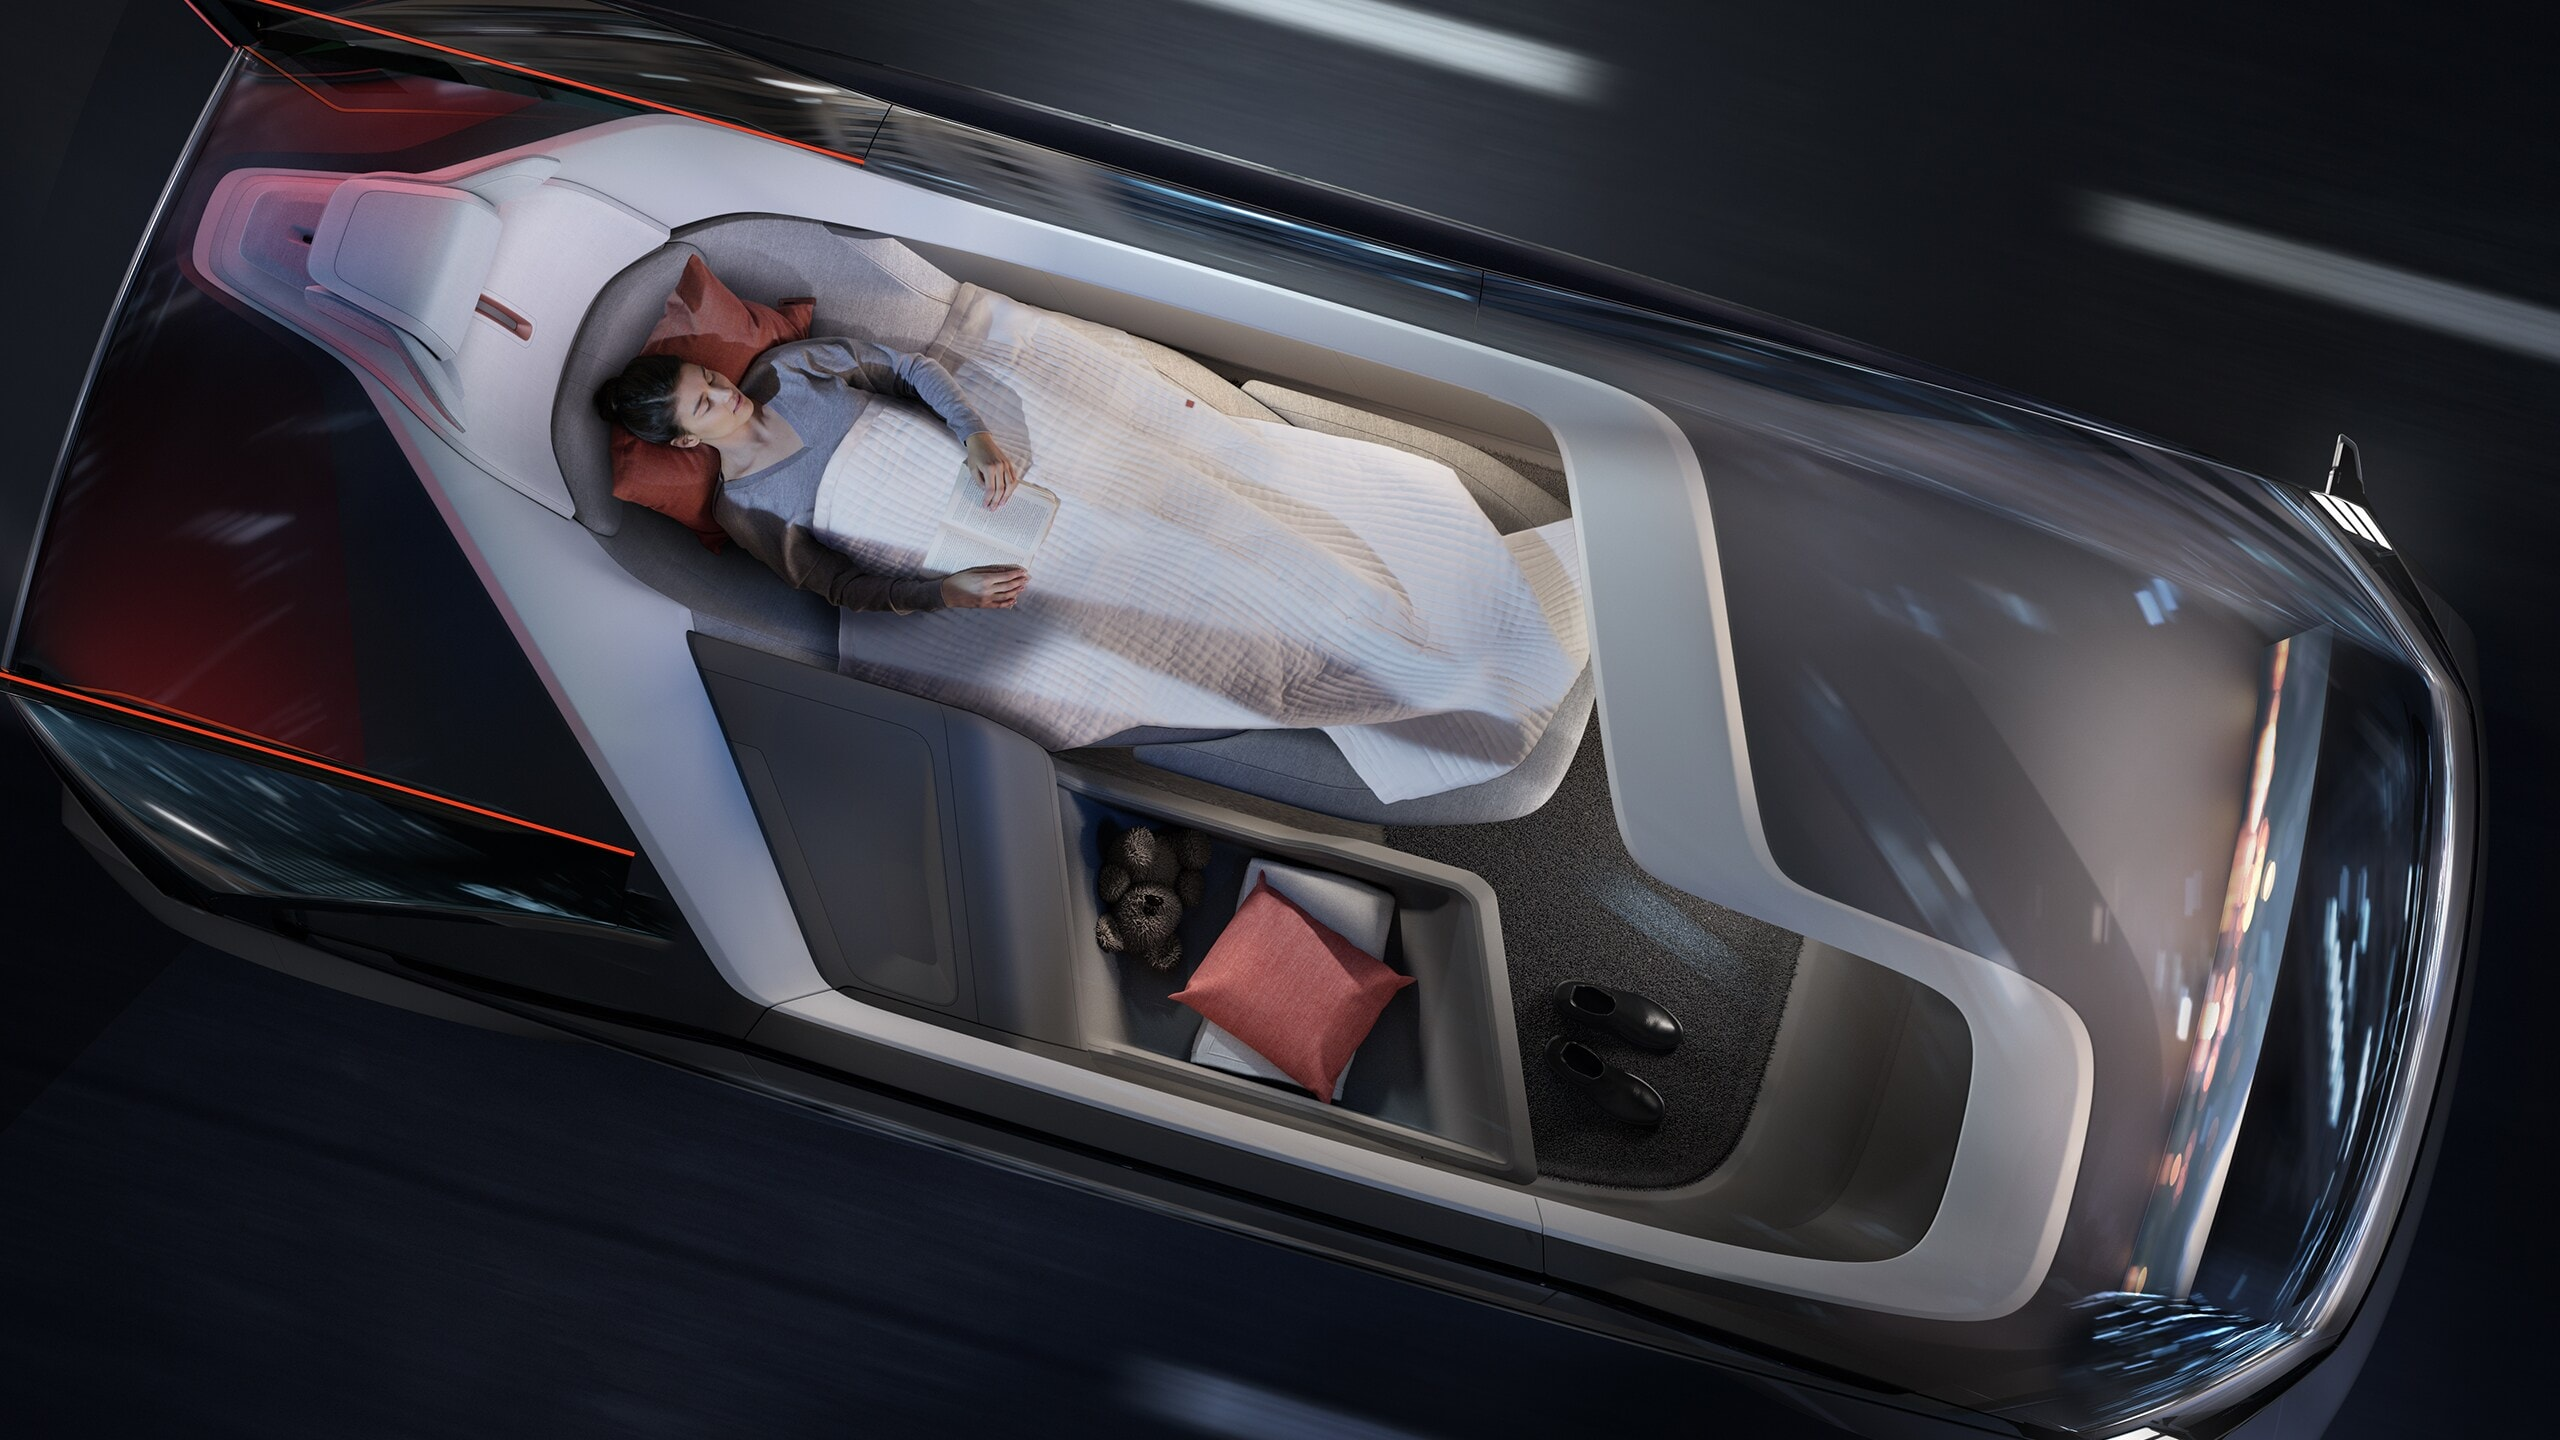 Woman utilising the Volvo autonomous drive to the fullest by enjoying a night's sleep